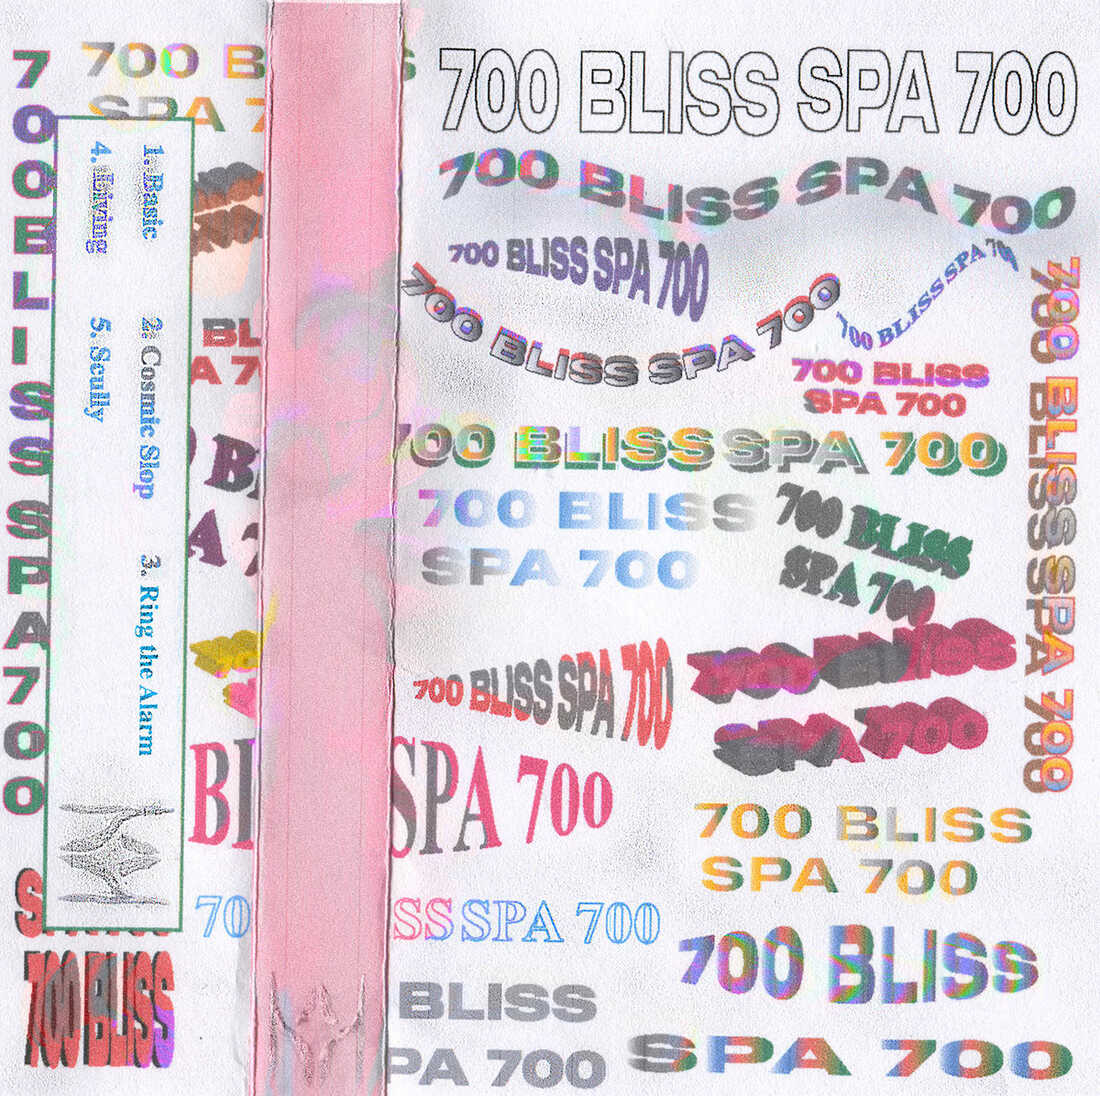 700 Bliss, Spa 700